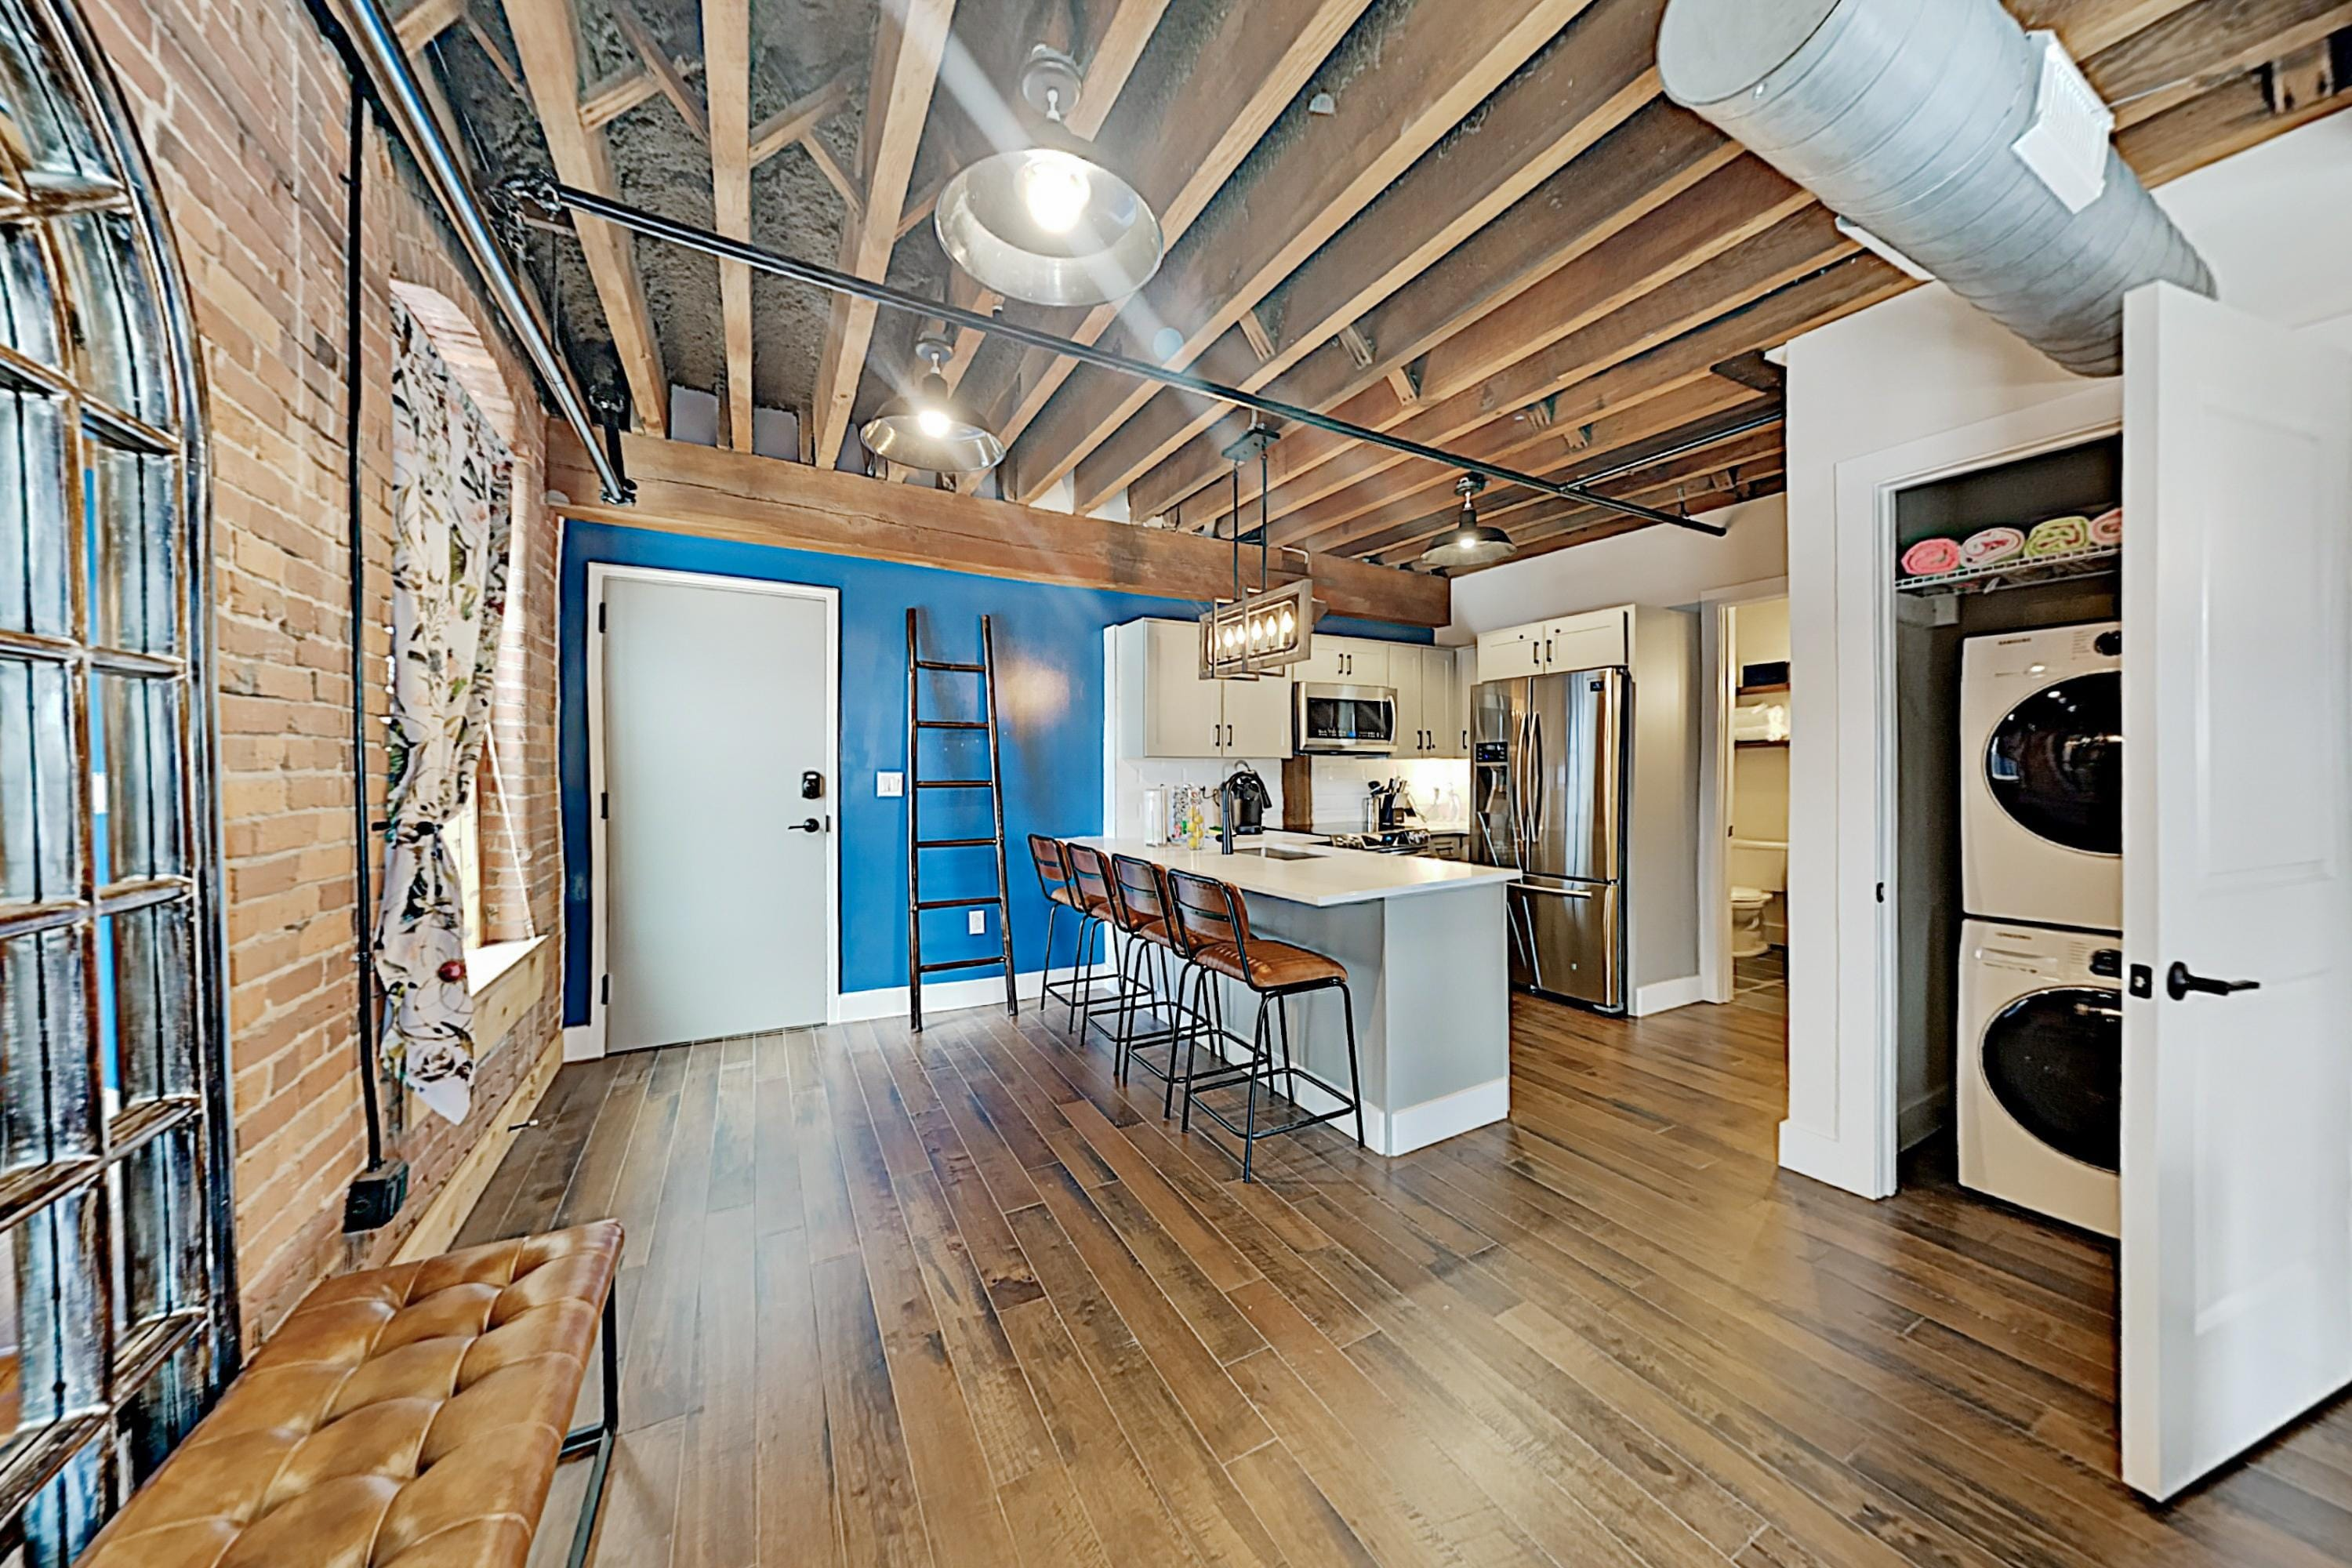 This updated property includes distinctive details like original graffiti on exposed brick, pipes, and beams.